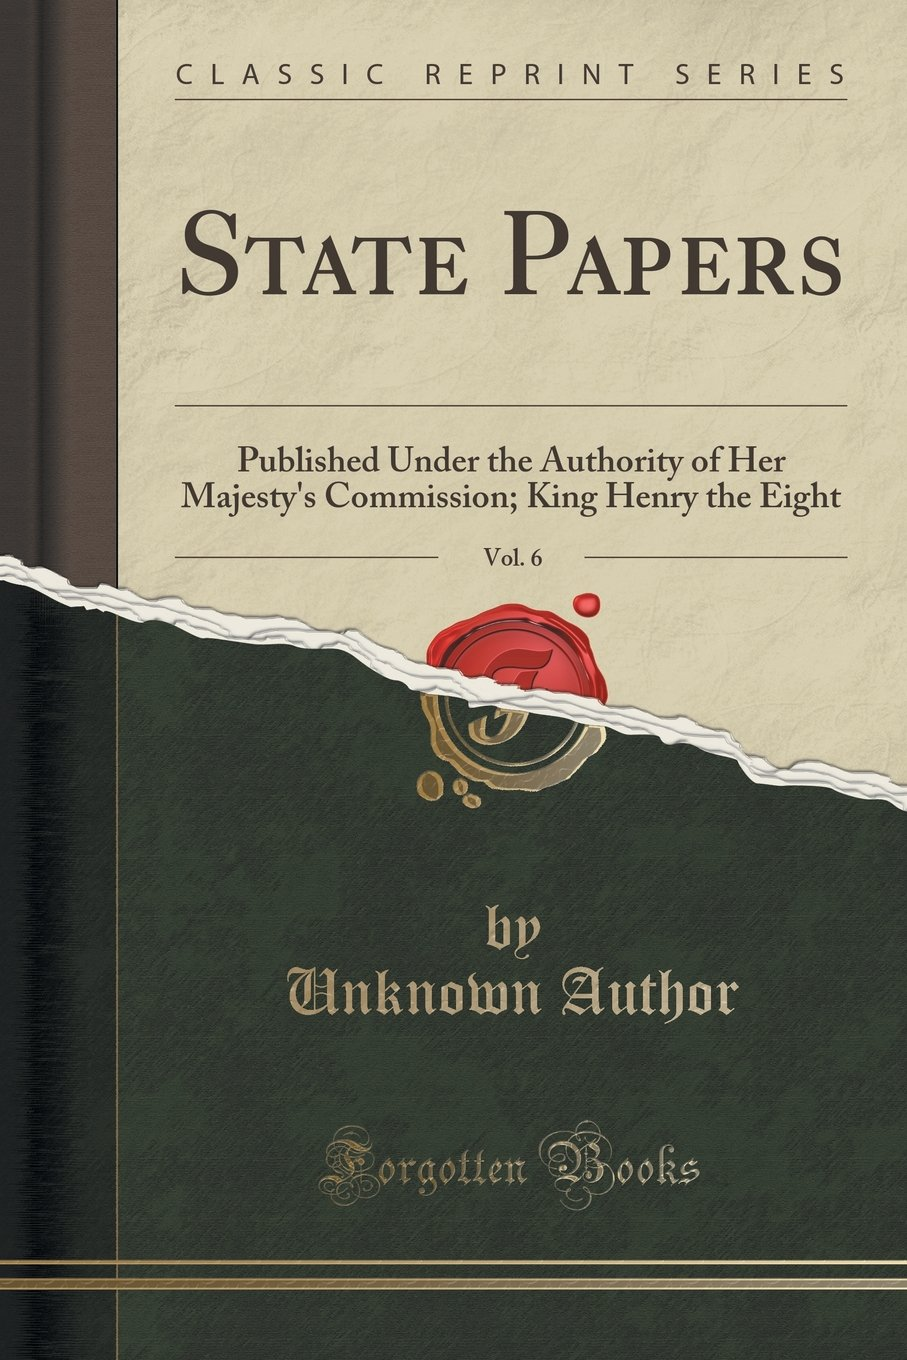 State Papers, Vol. 6: Published Under the Authority of Her Majesty's Commission; King Henry the Eight (Classic Reprint) pdf epub